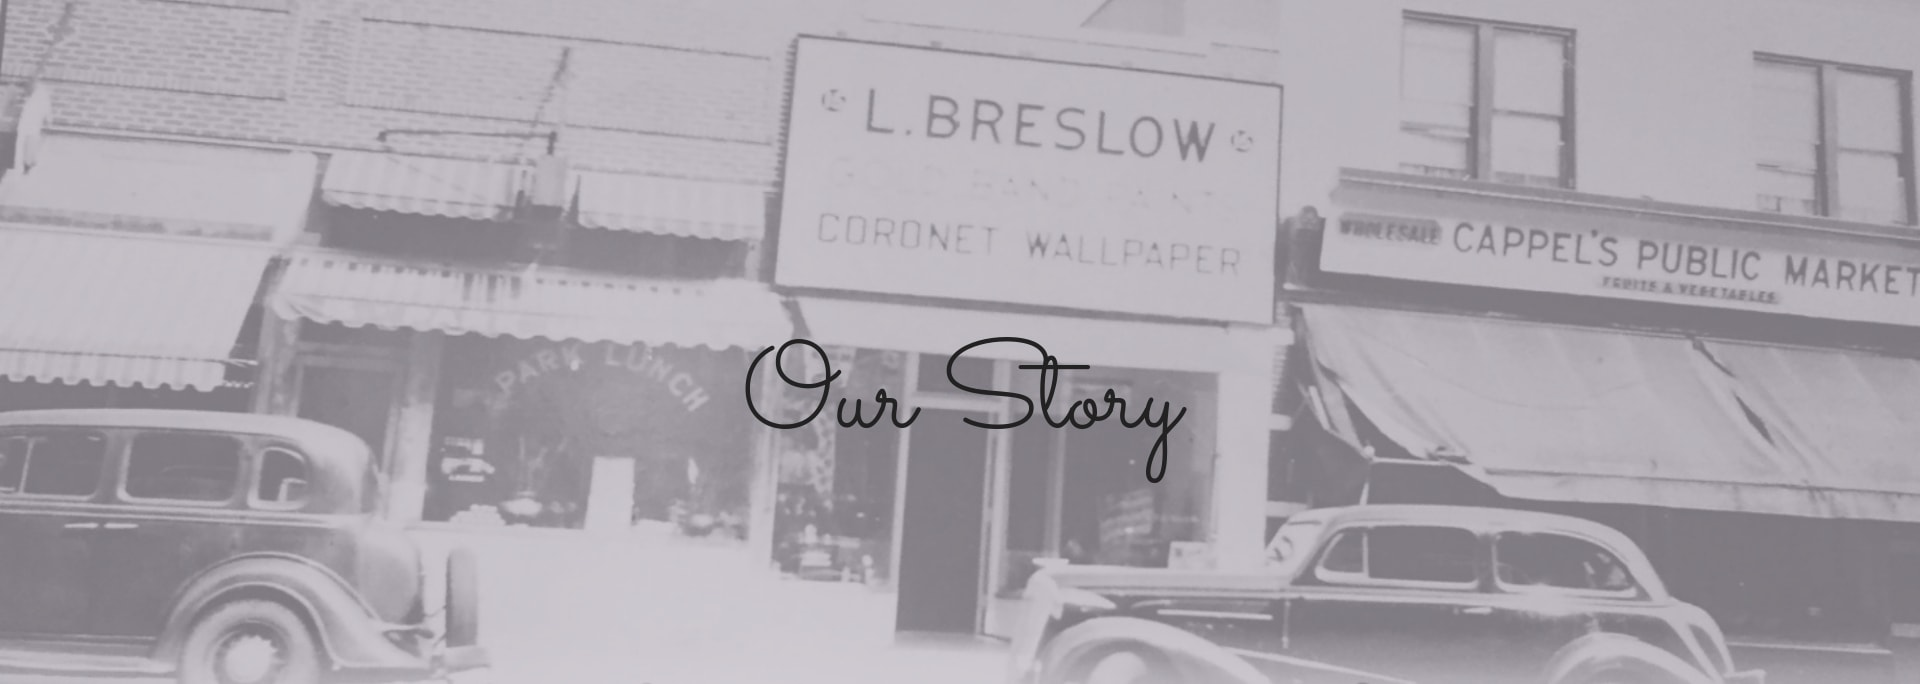 Breslow Home Design Center About Us